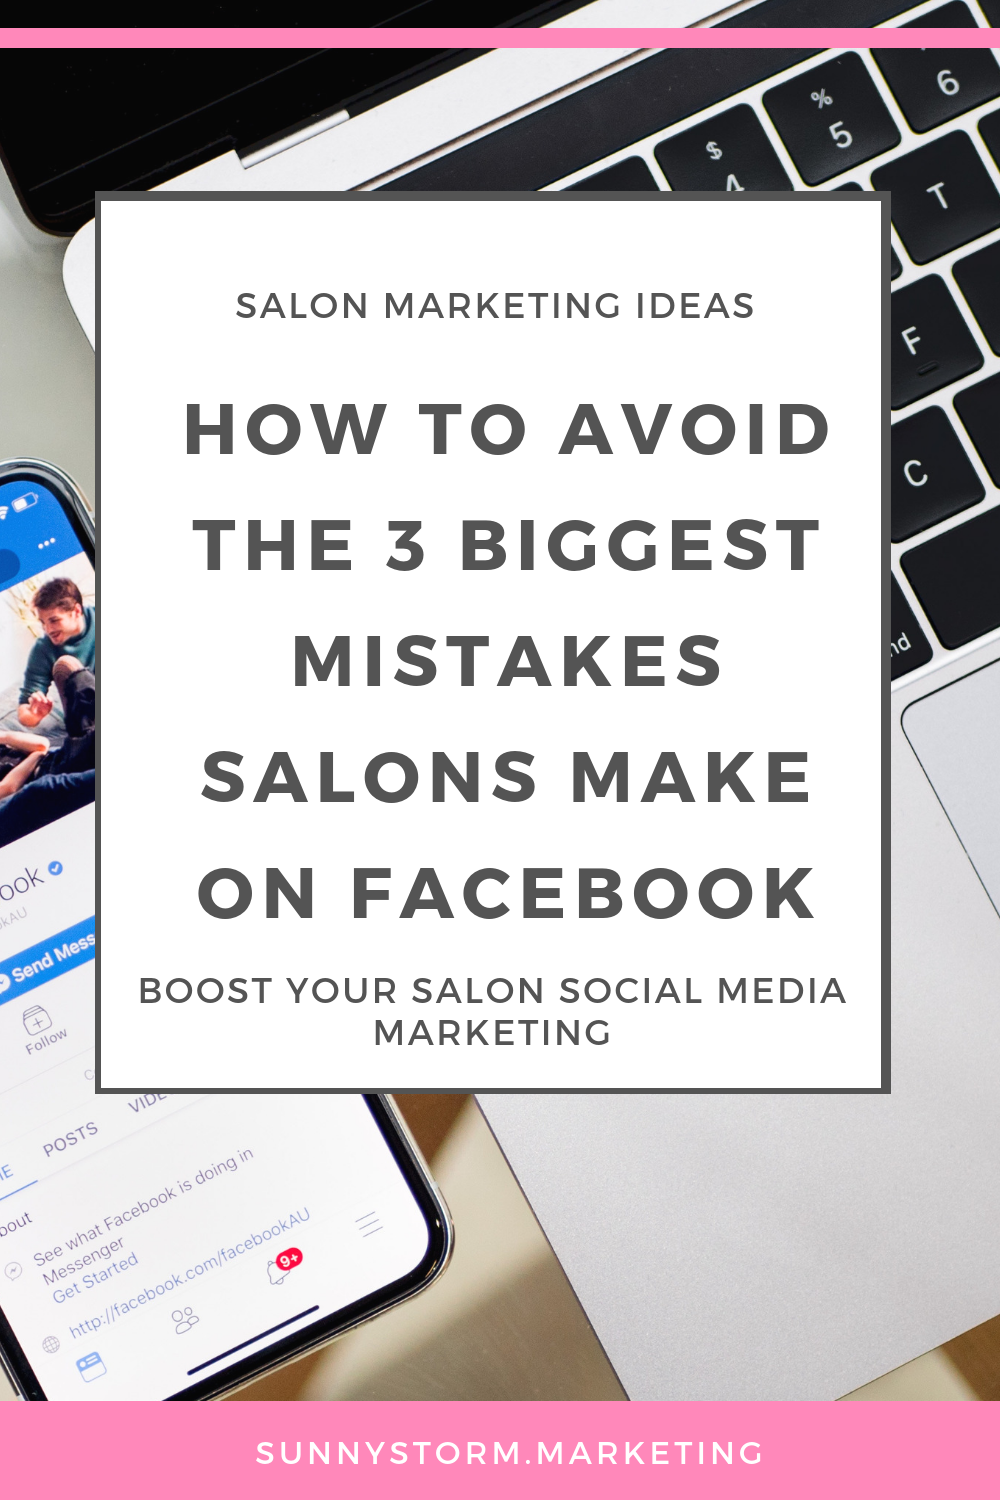 The 20 biggest mistakes salons make on Facebook (and how to fix